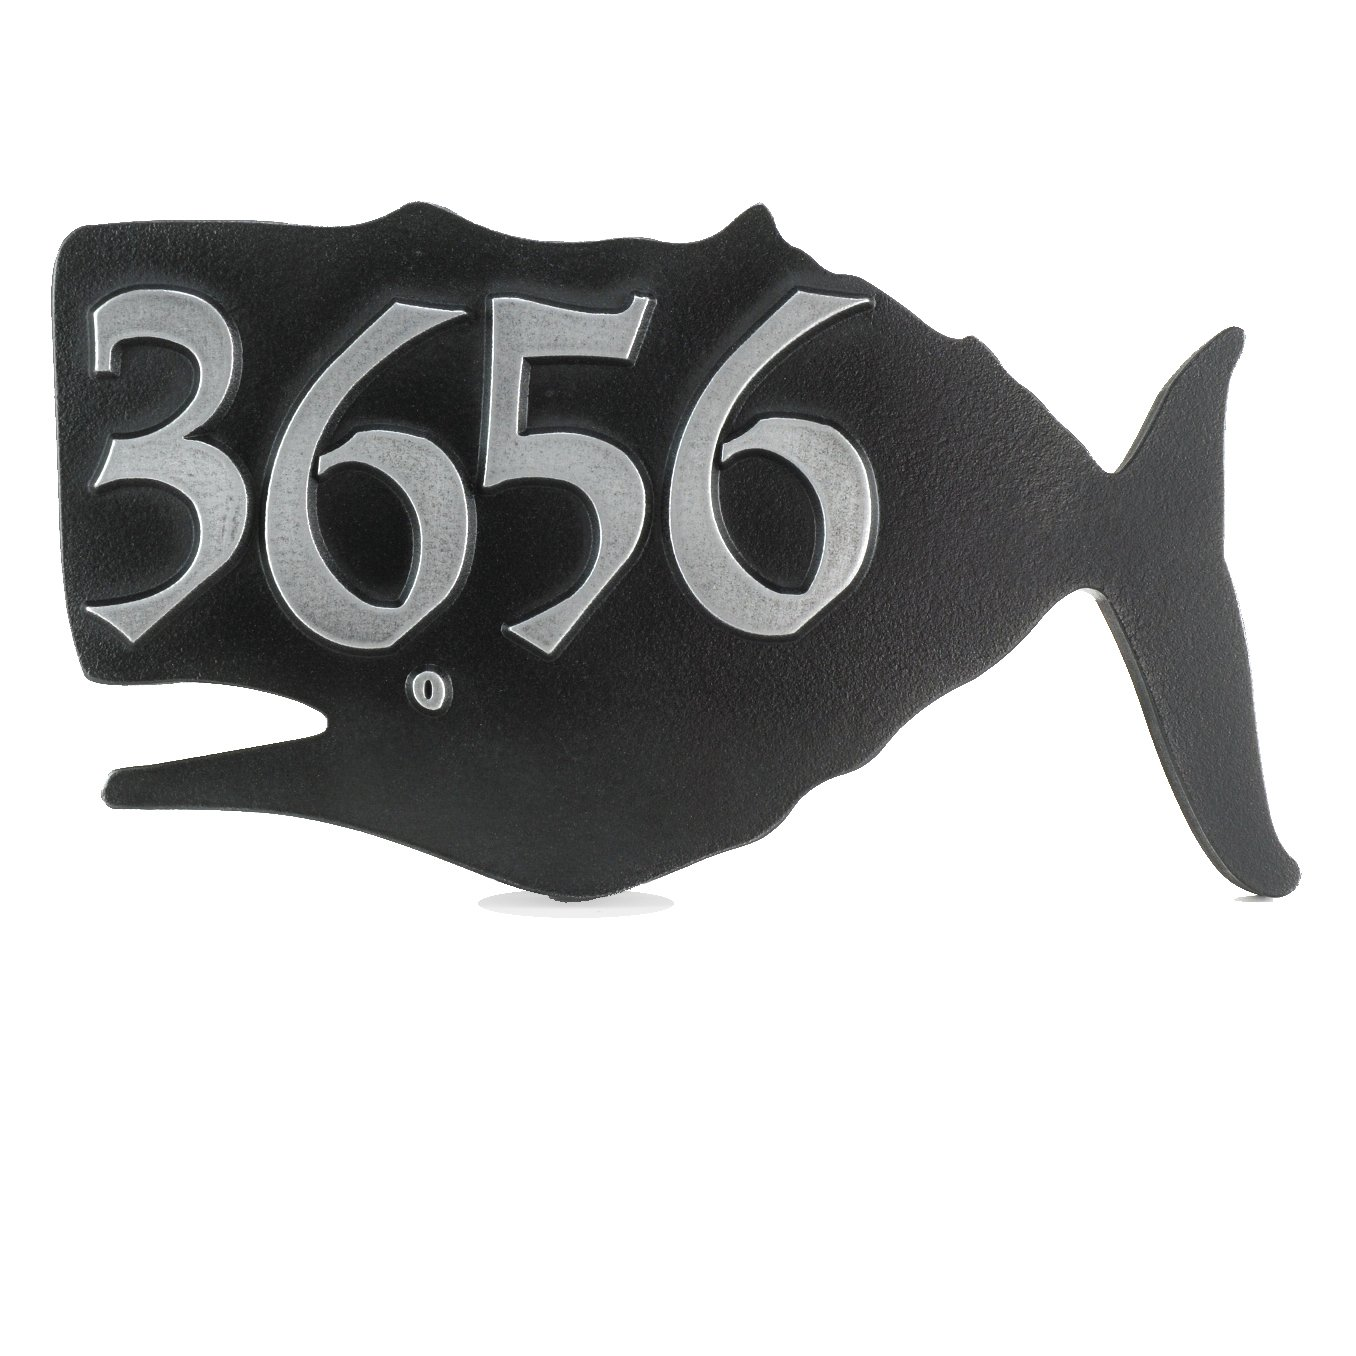 Whale Home Address Plaque 14x8 - Raised Pewter Metal Coated